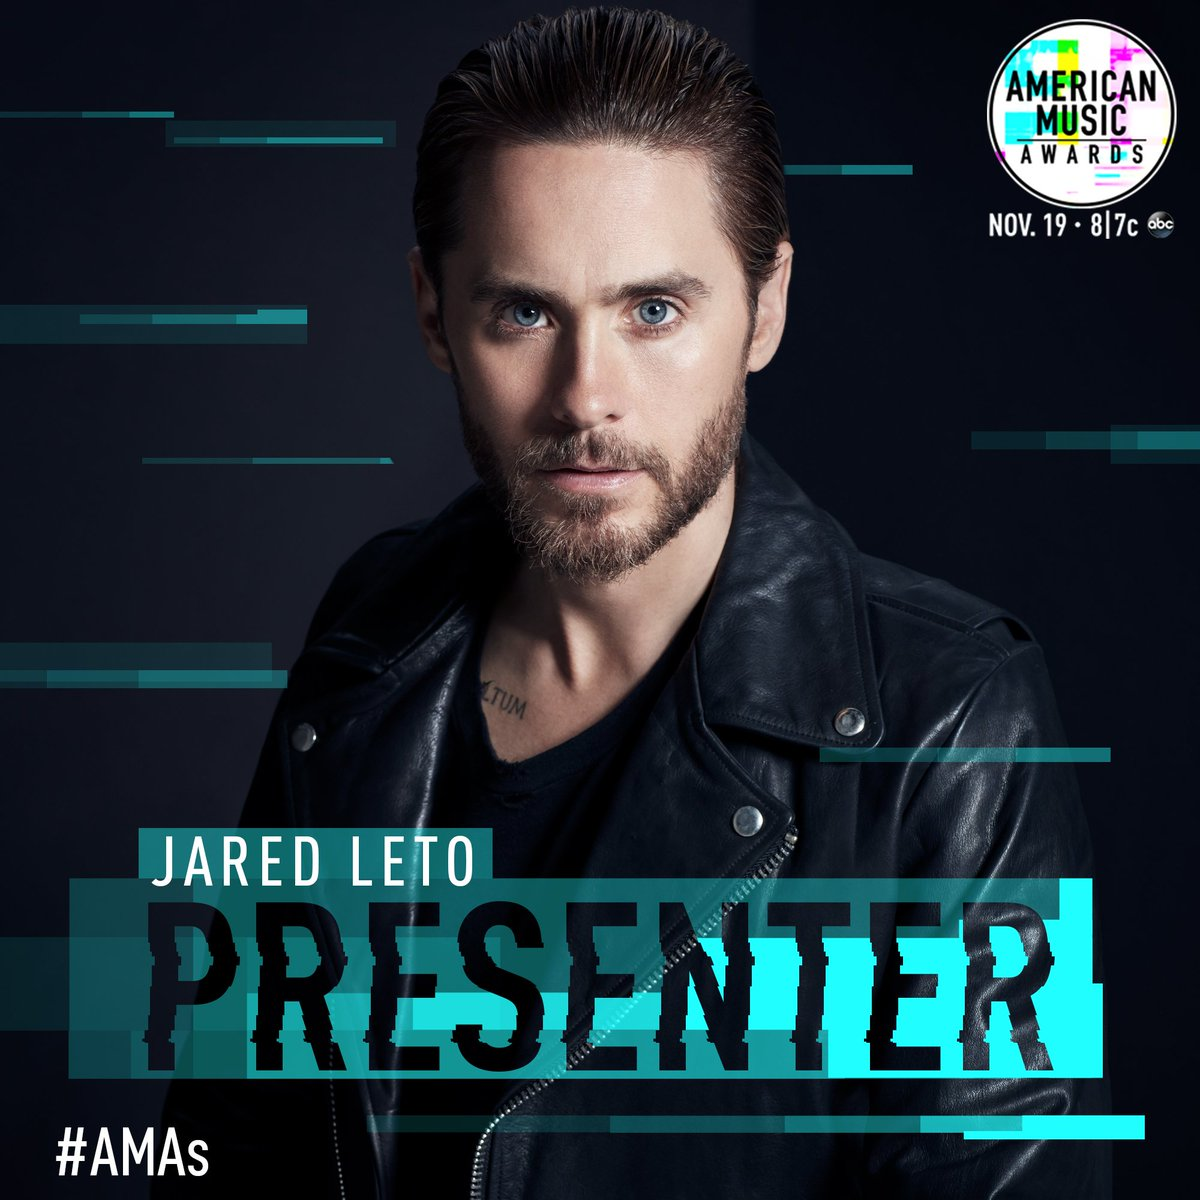 RT @AMAs: The one and only @JaredLeto will be presenting at the #AMAs this Sunday at 8/7c on ABC! ???? https://t.co/Exk6gTz7Dc